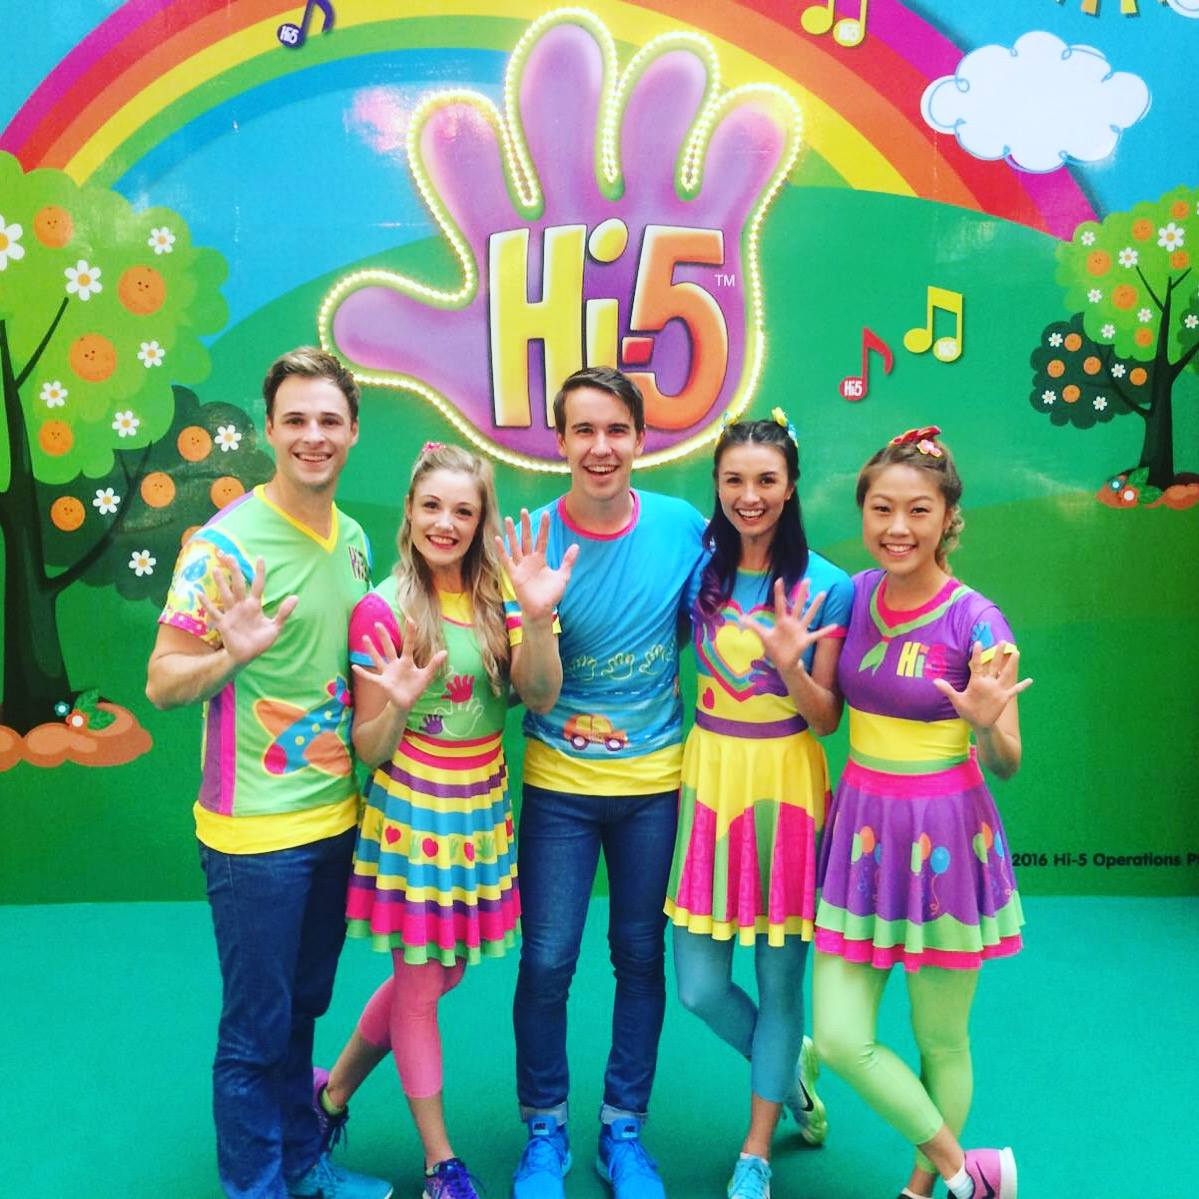 Hi5 Cast – Quotes of the Day